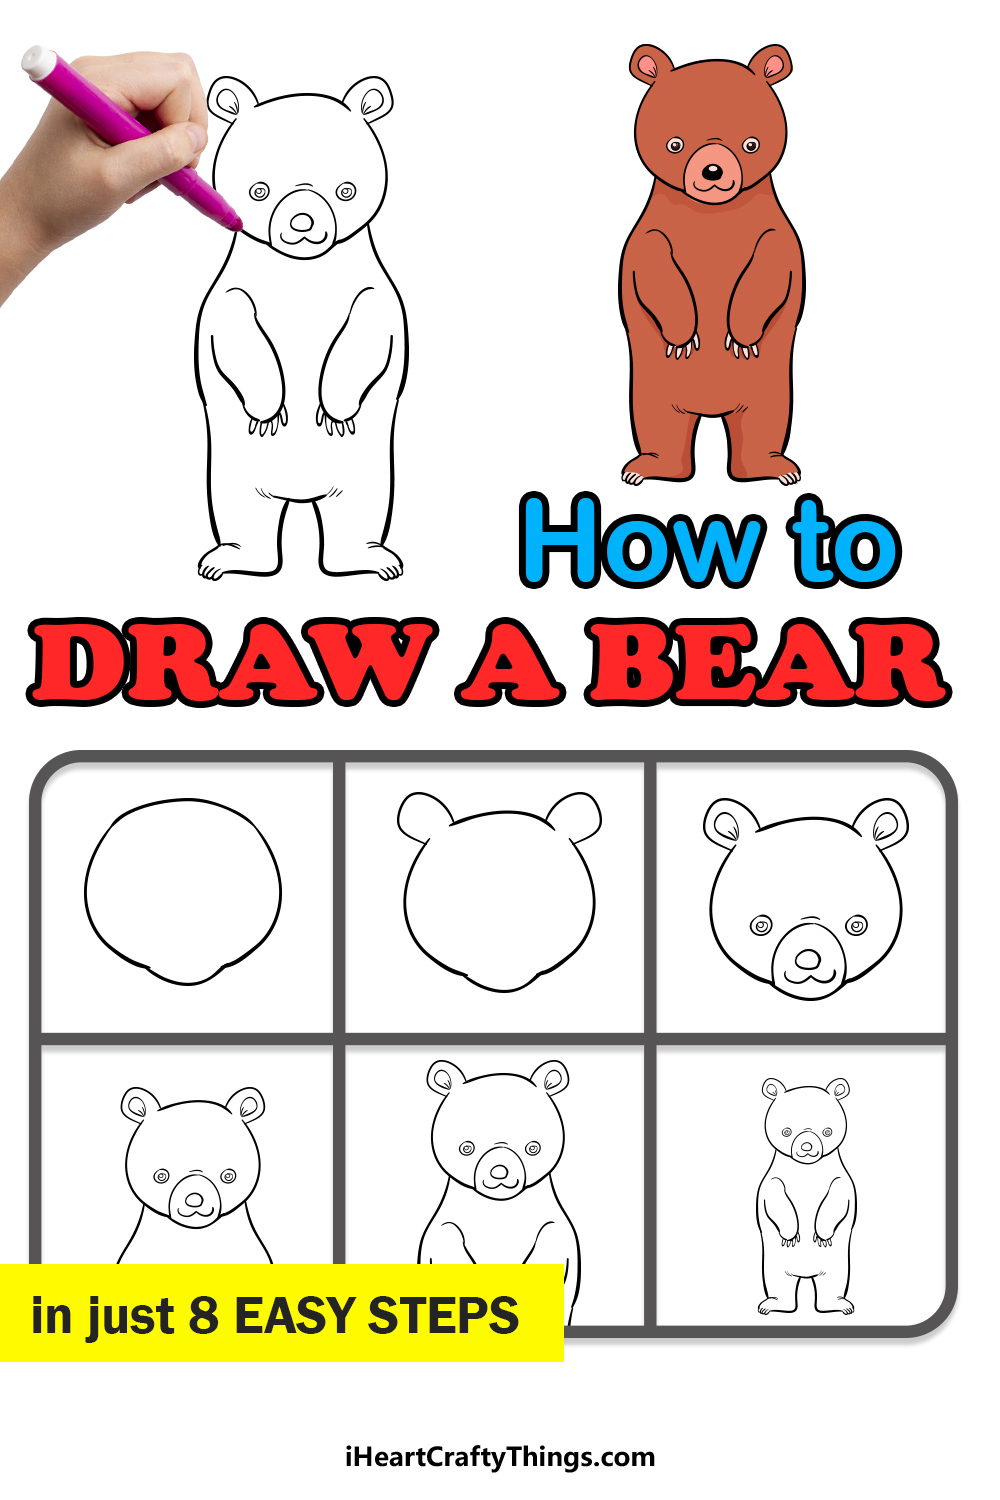 how to draw a bear in 8 easy steps